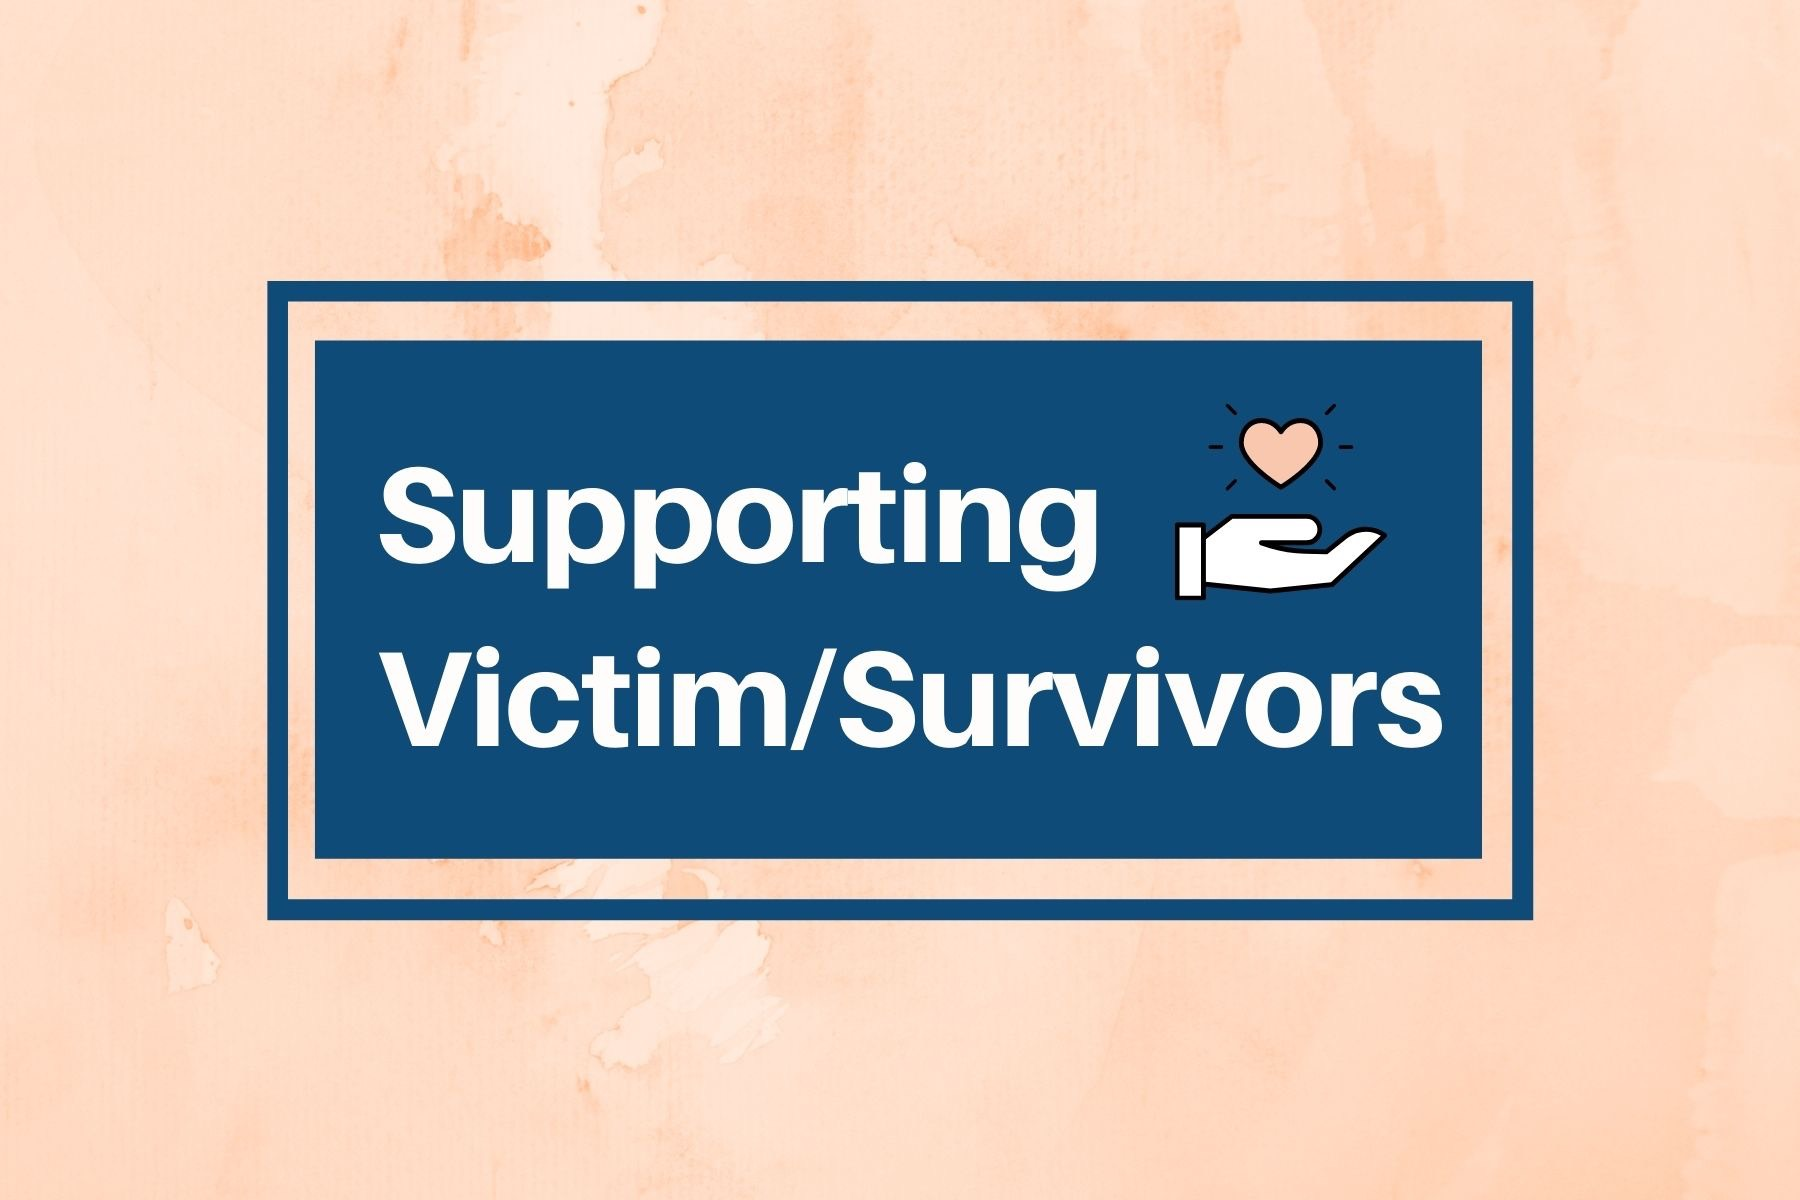 Supporting victim survivors